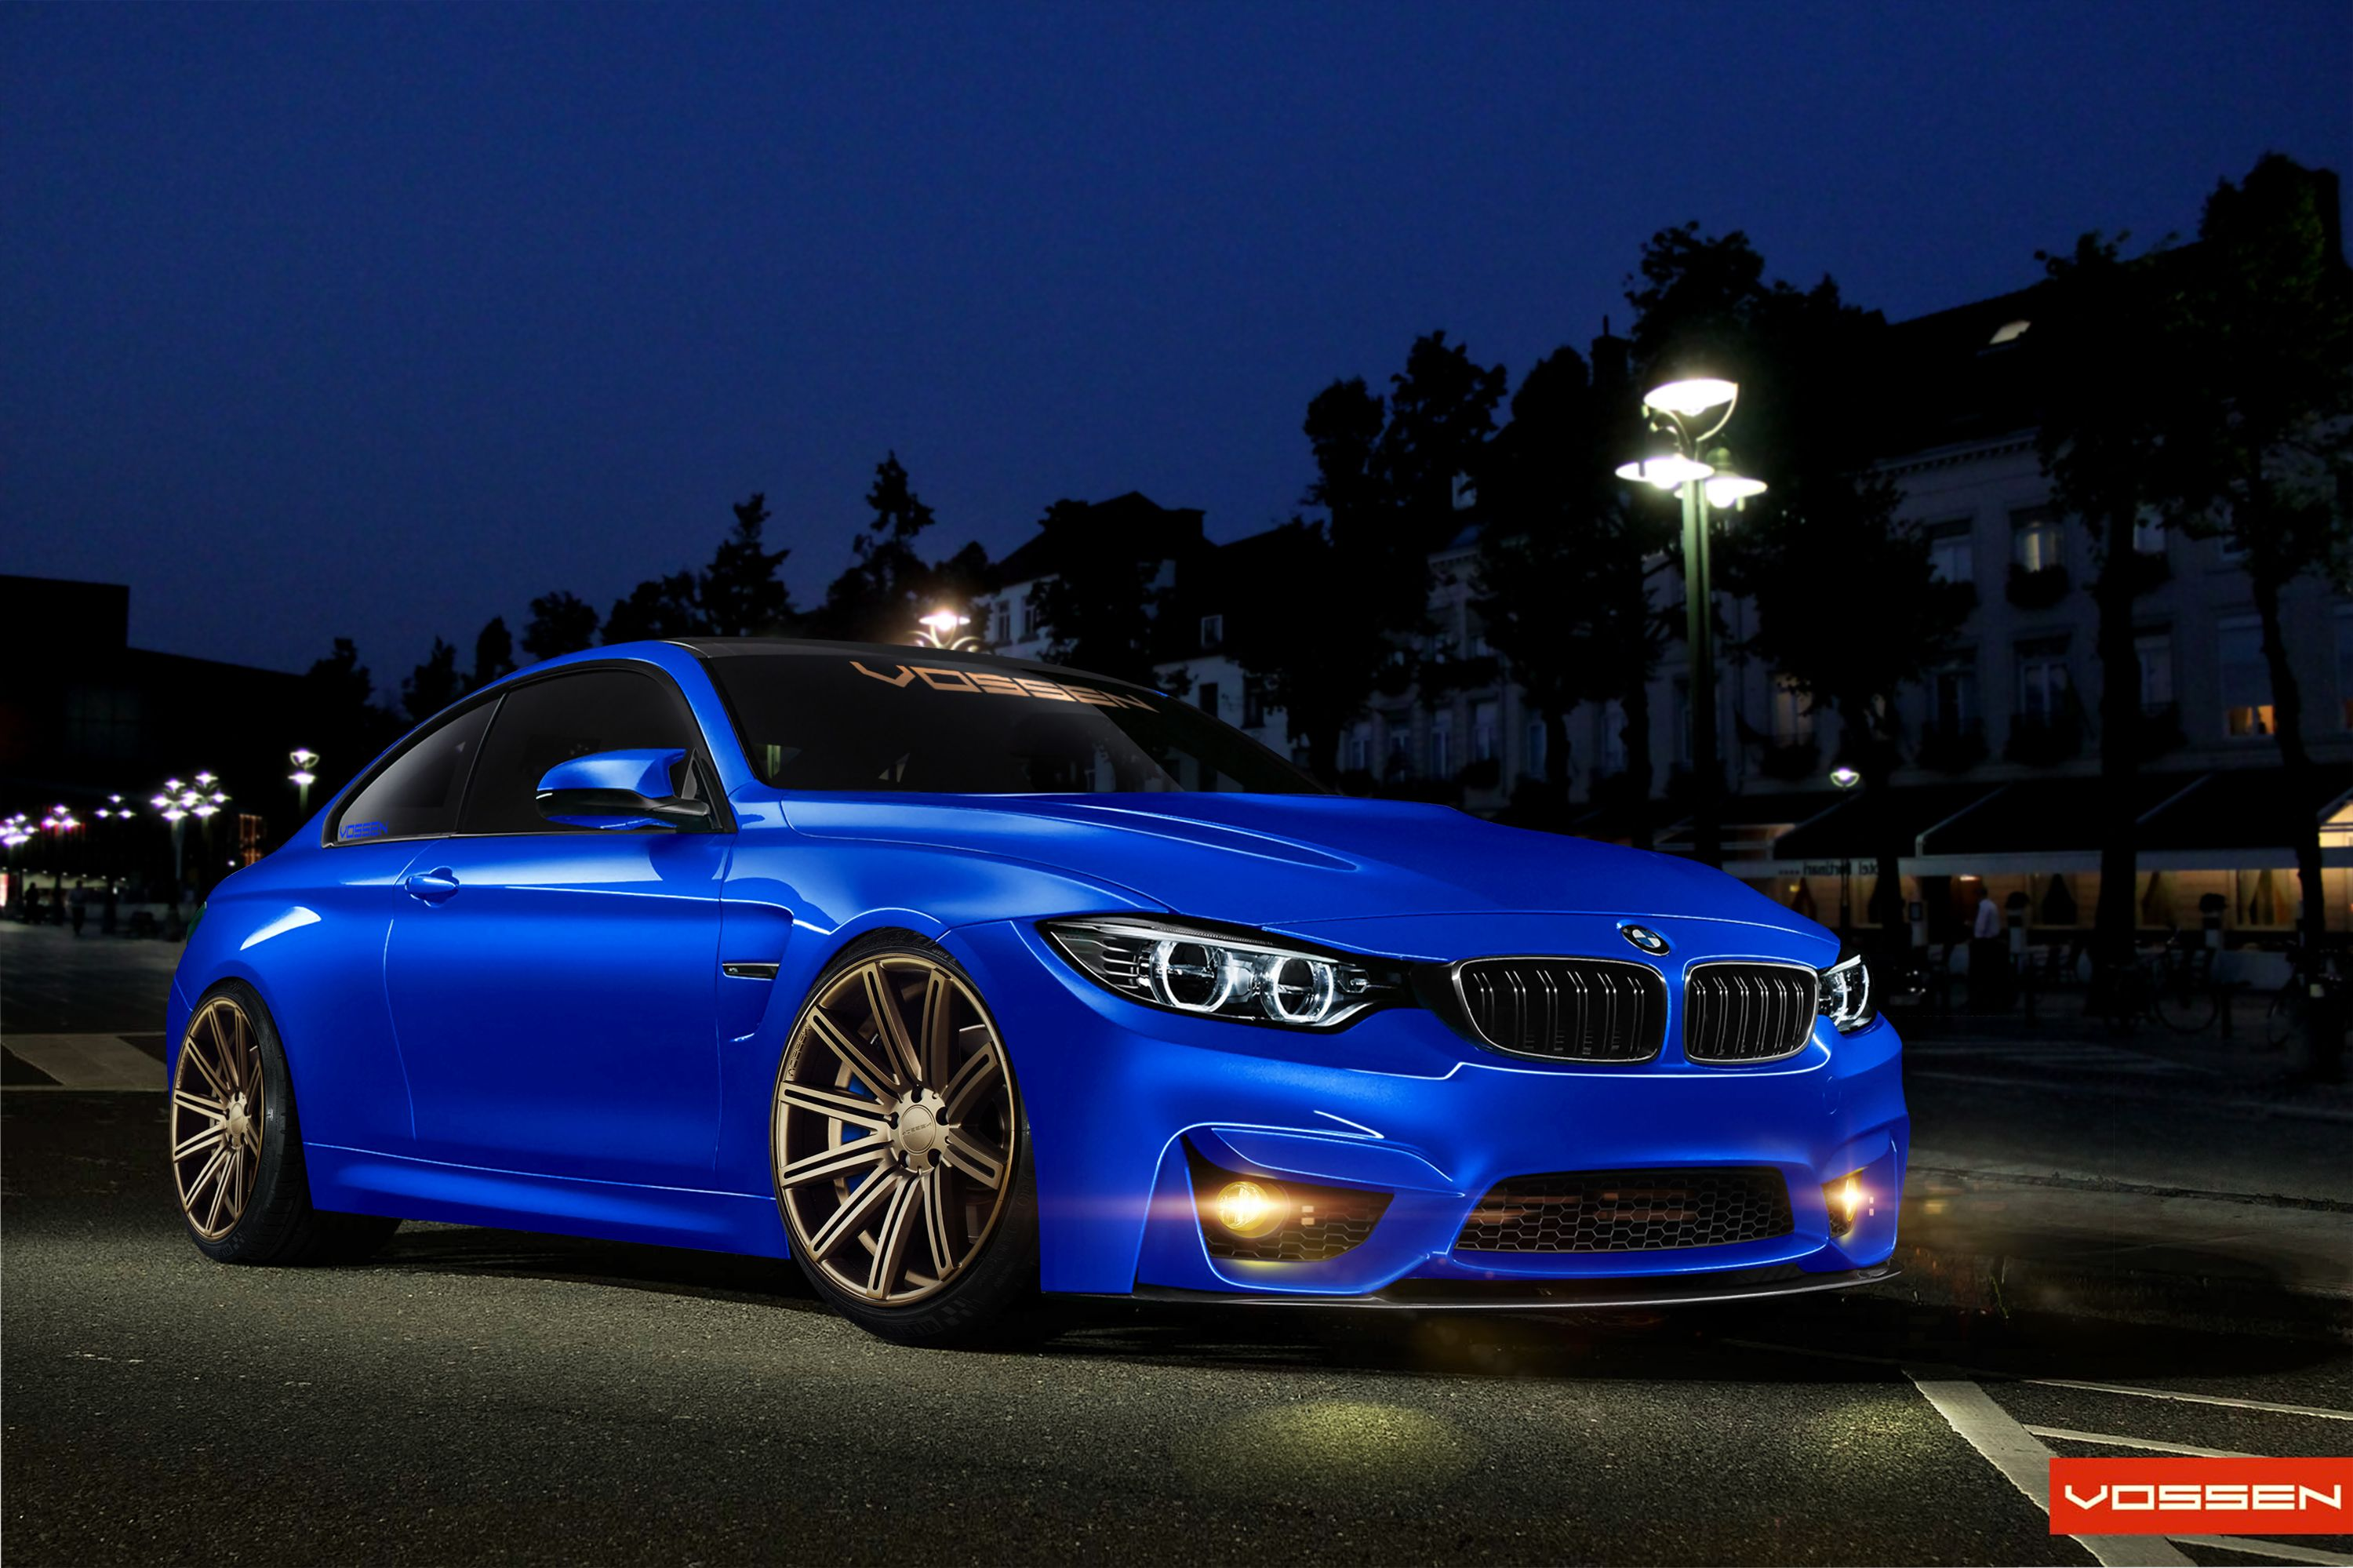 Brand New Bmw M4 Concept Color And Wheels Vossen Cv4 What Do You